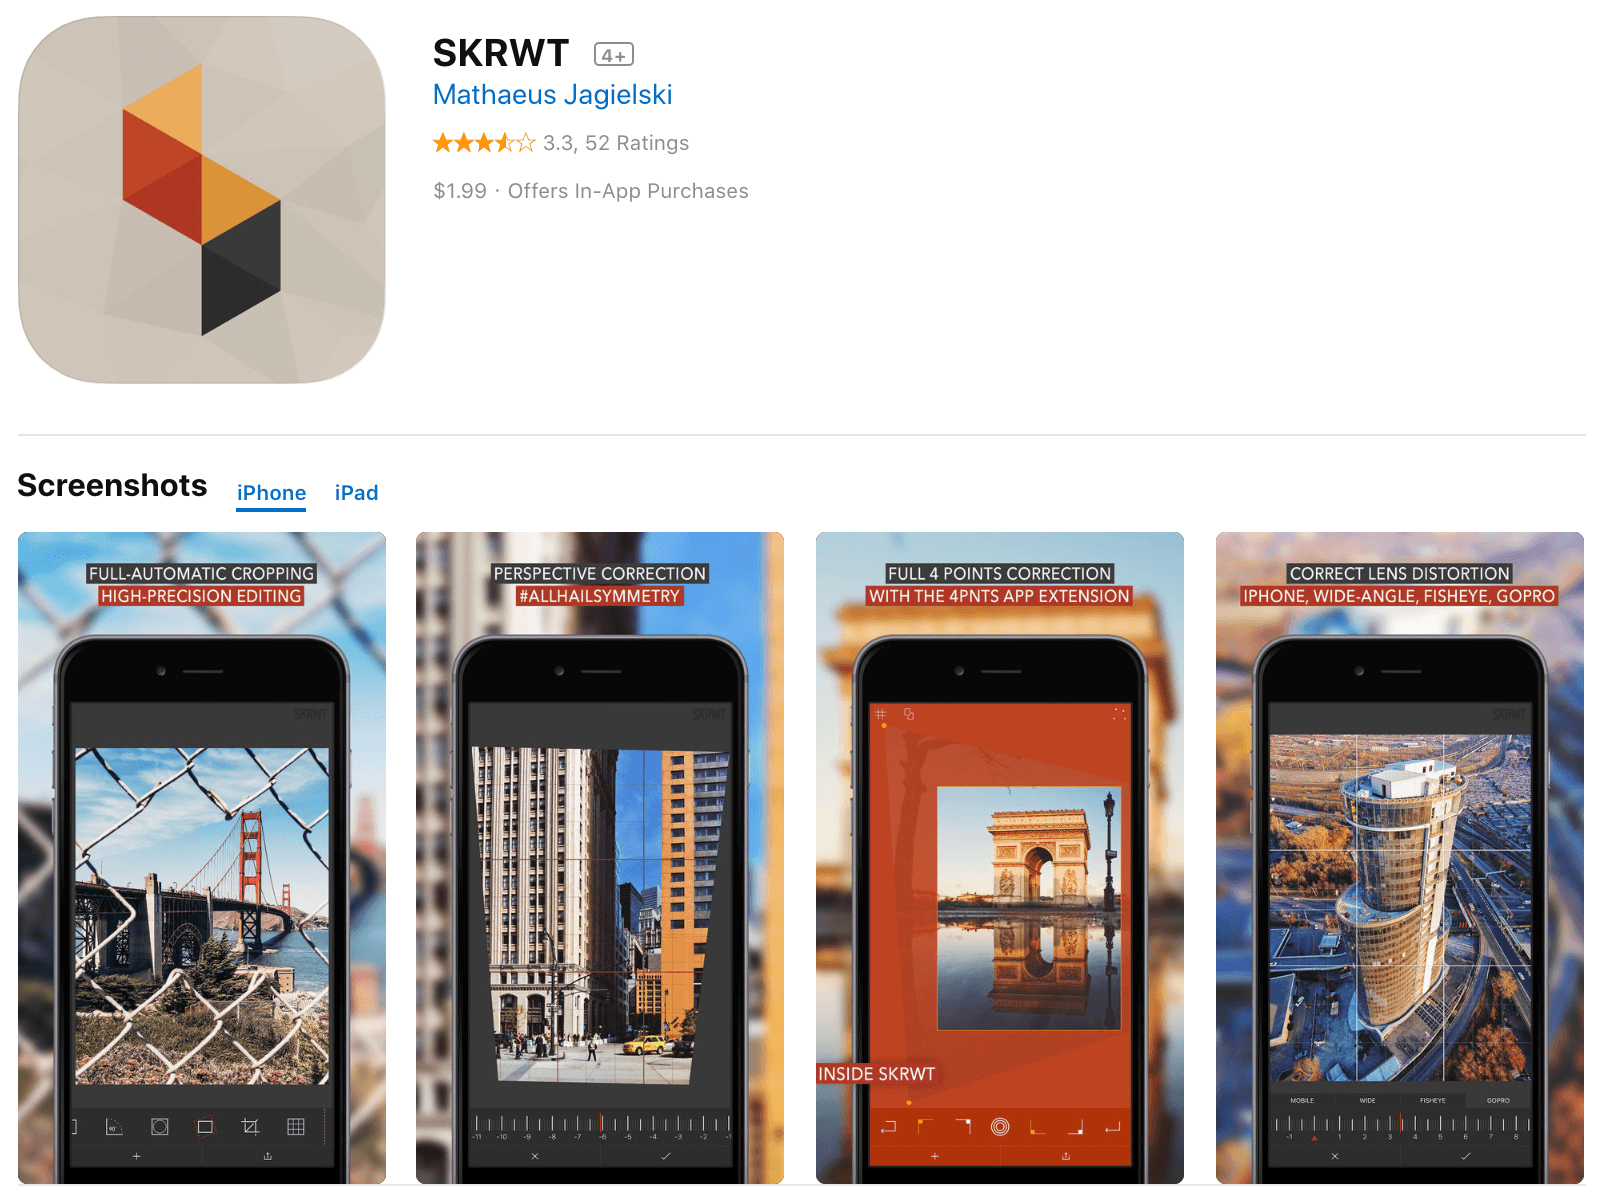 SKRWT Picture Editing App